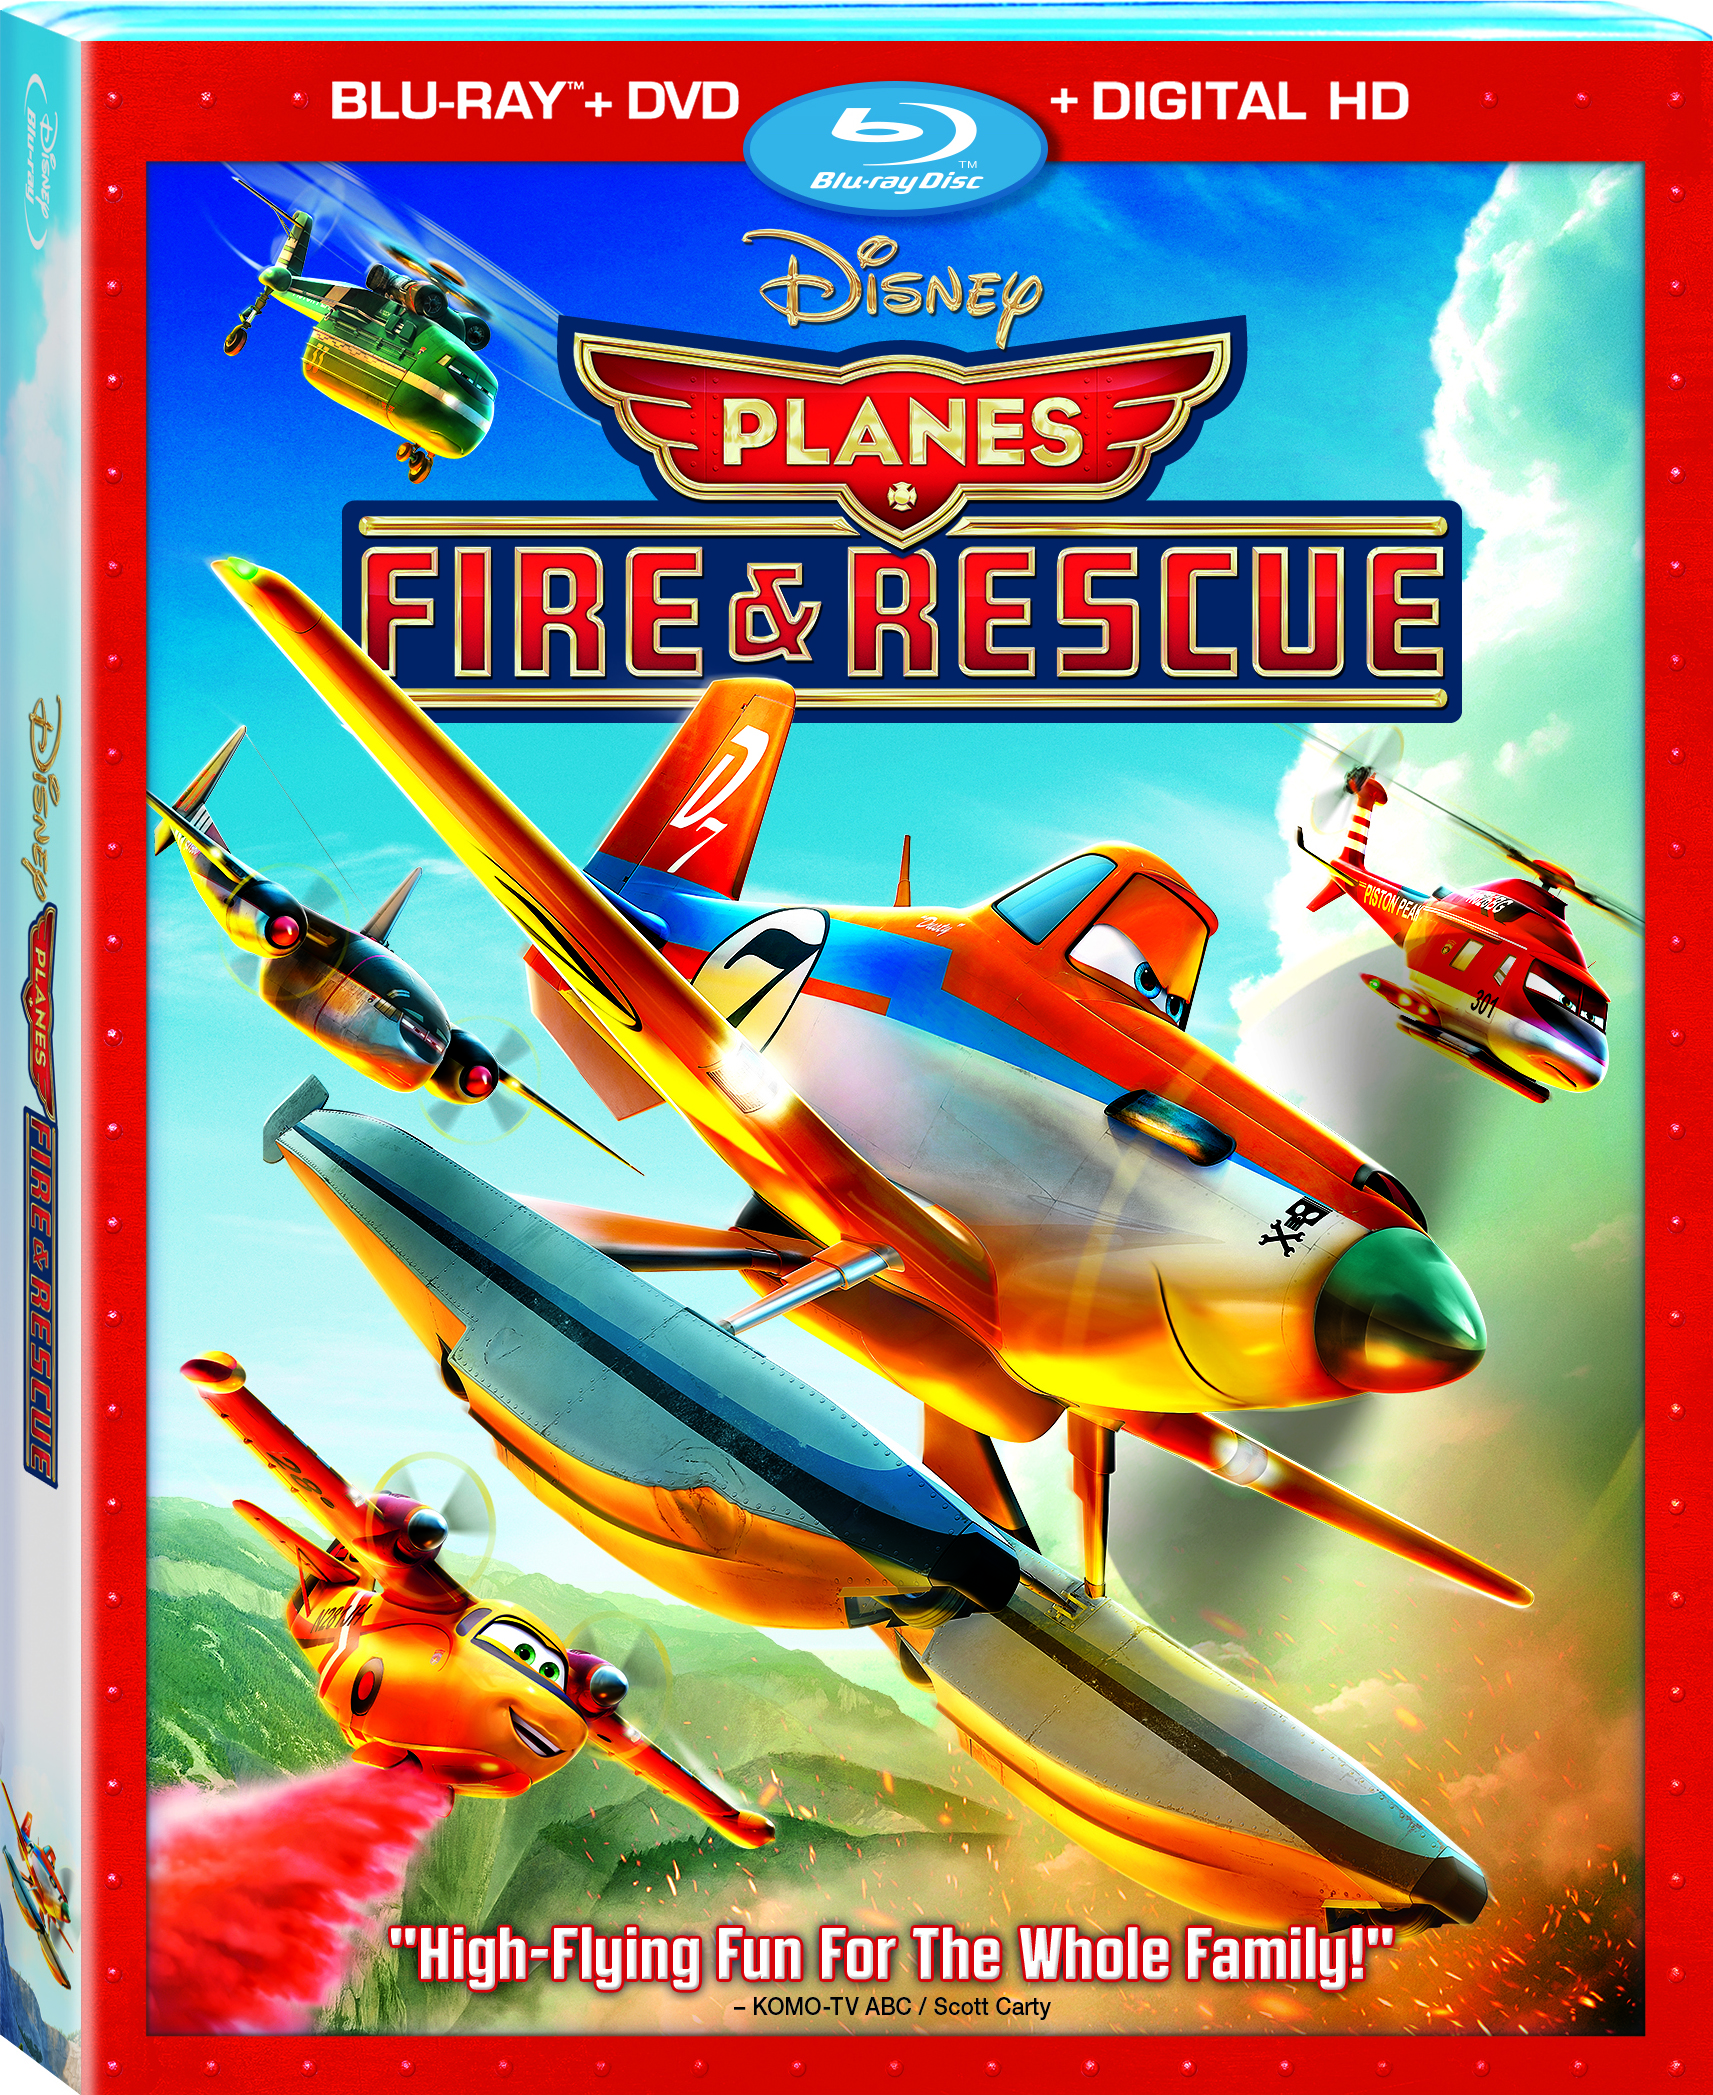 Disney PlanesFiresAndRescueBluray copy